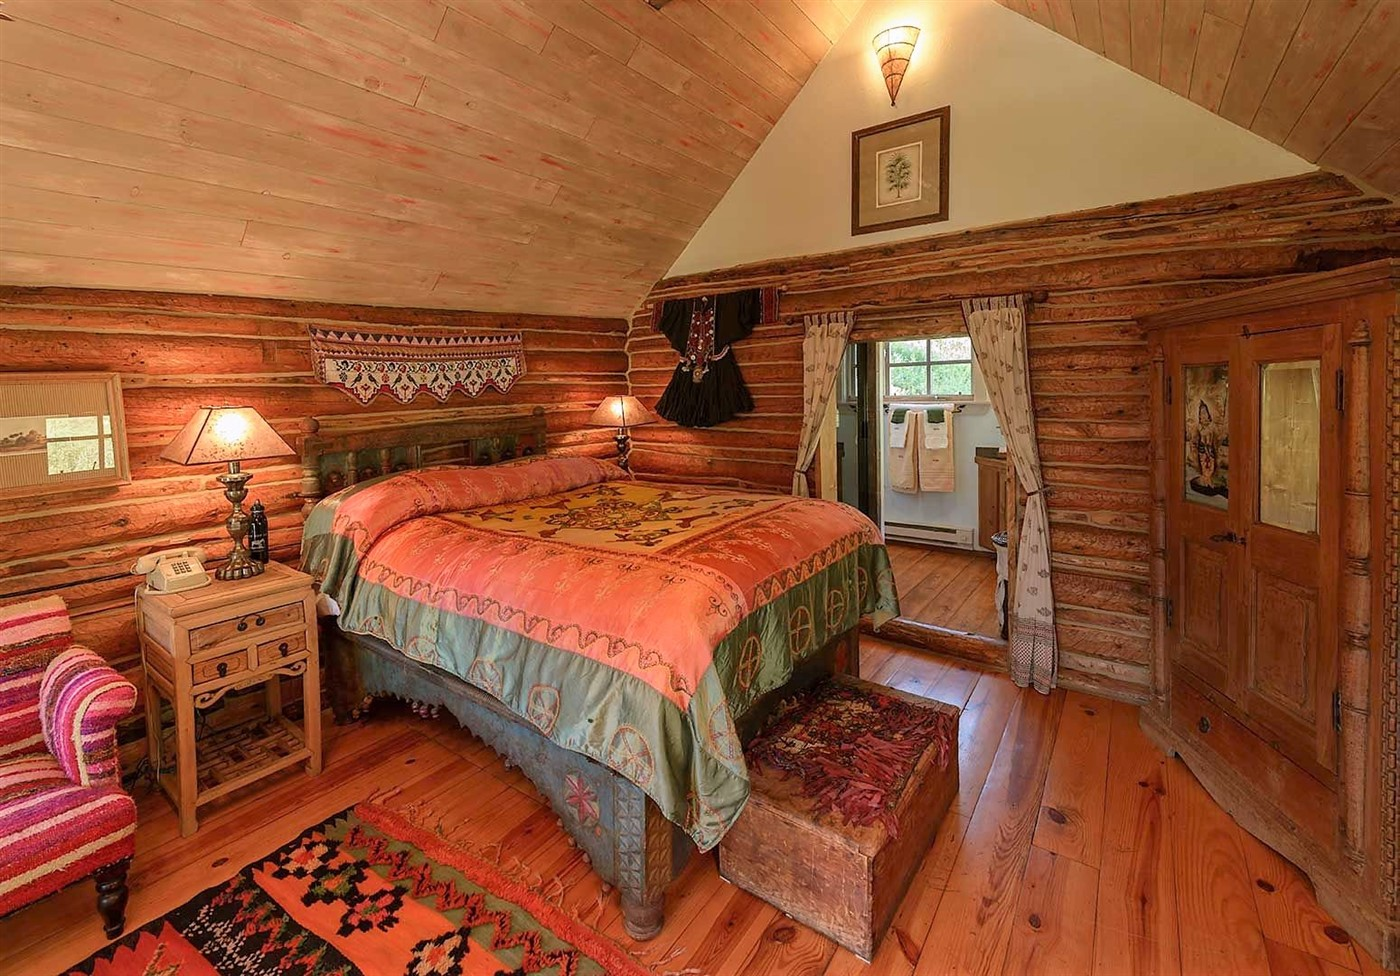 wood floor, wall and ceiling, cabin bedroom design ideas